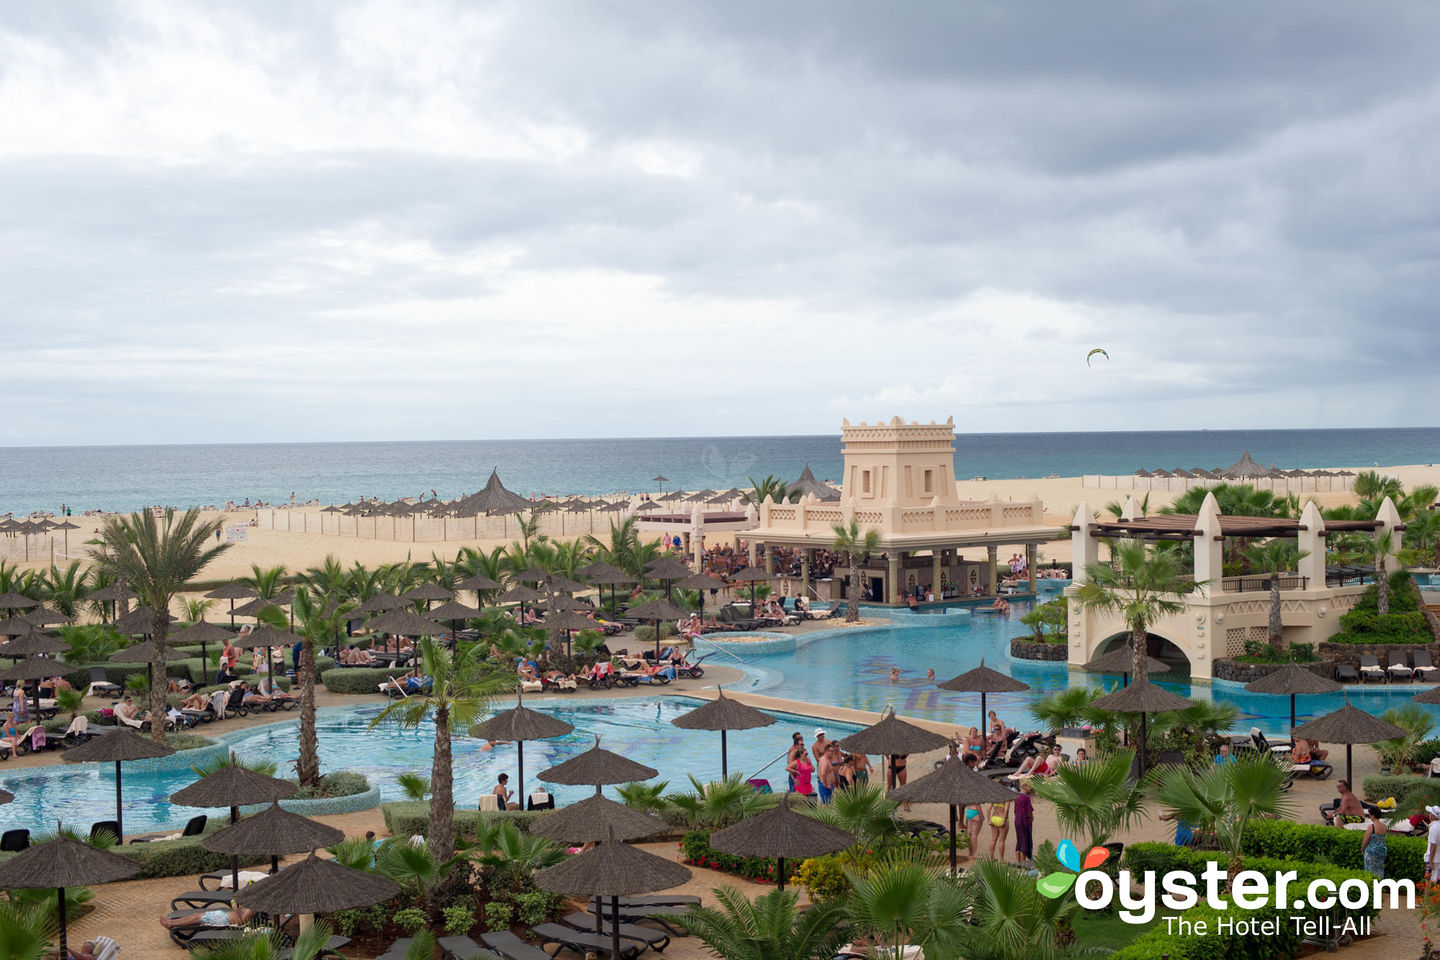 Chula Vista Resort Review Updated Rates Sep 2019: Hotel Riu Touareg: Review + Updated Rates (Sep 2019